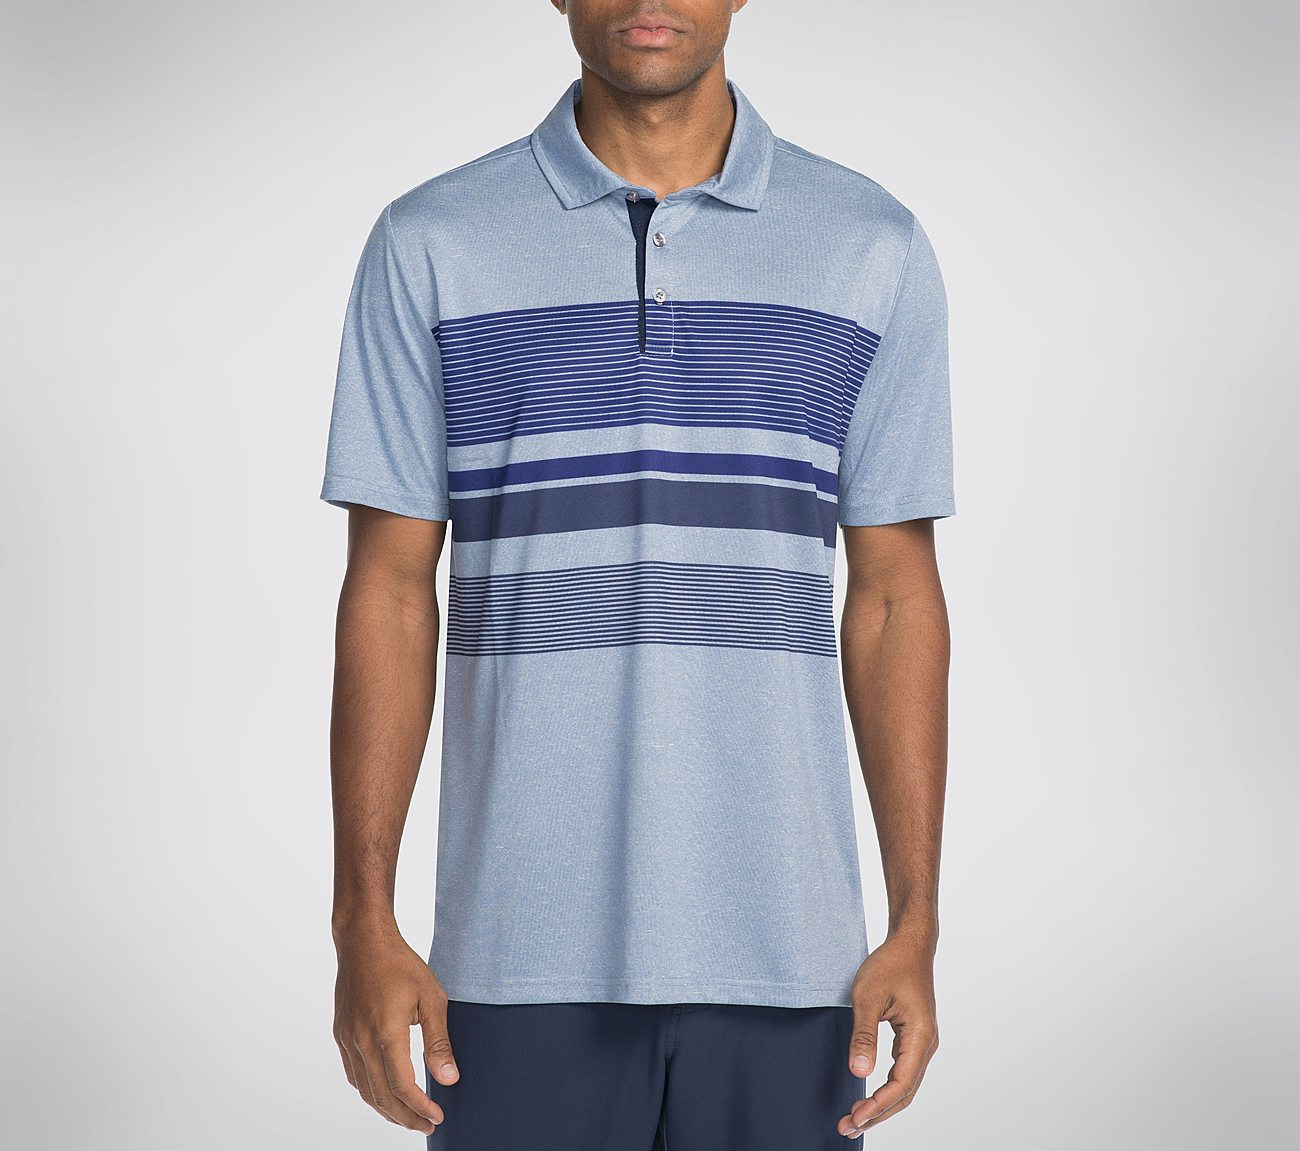 Skechers GO GOLF Slice Engineered Stripe Polo Shirt